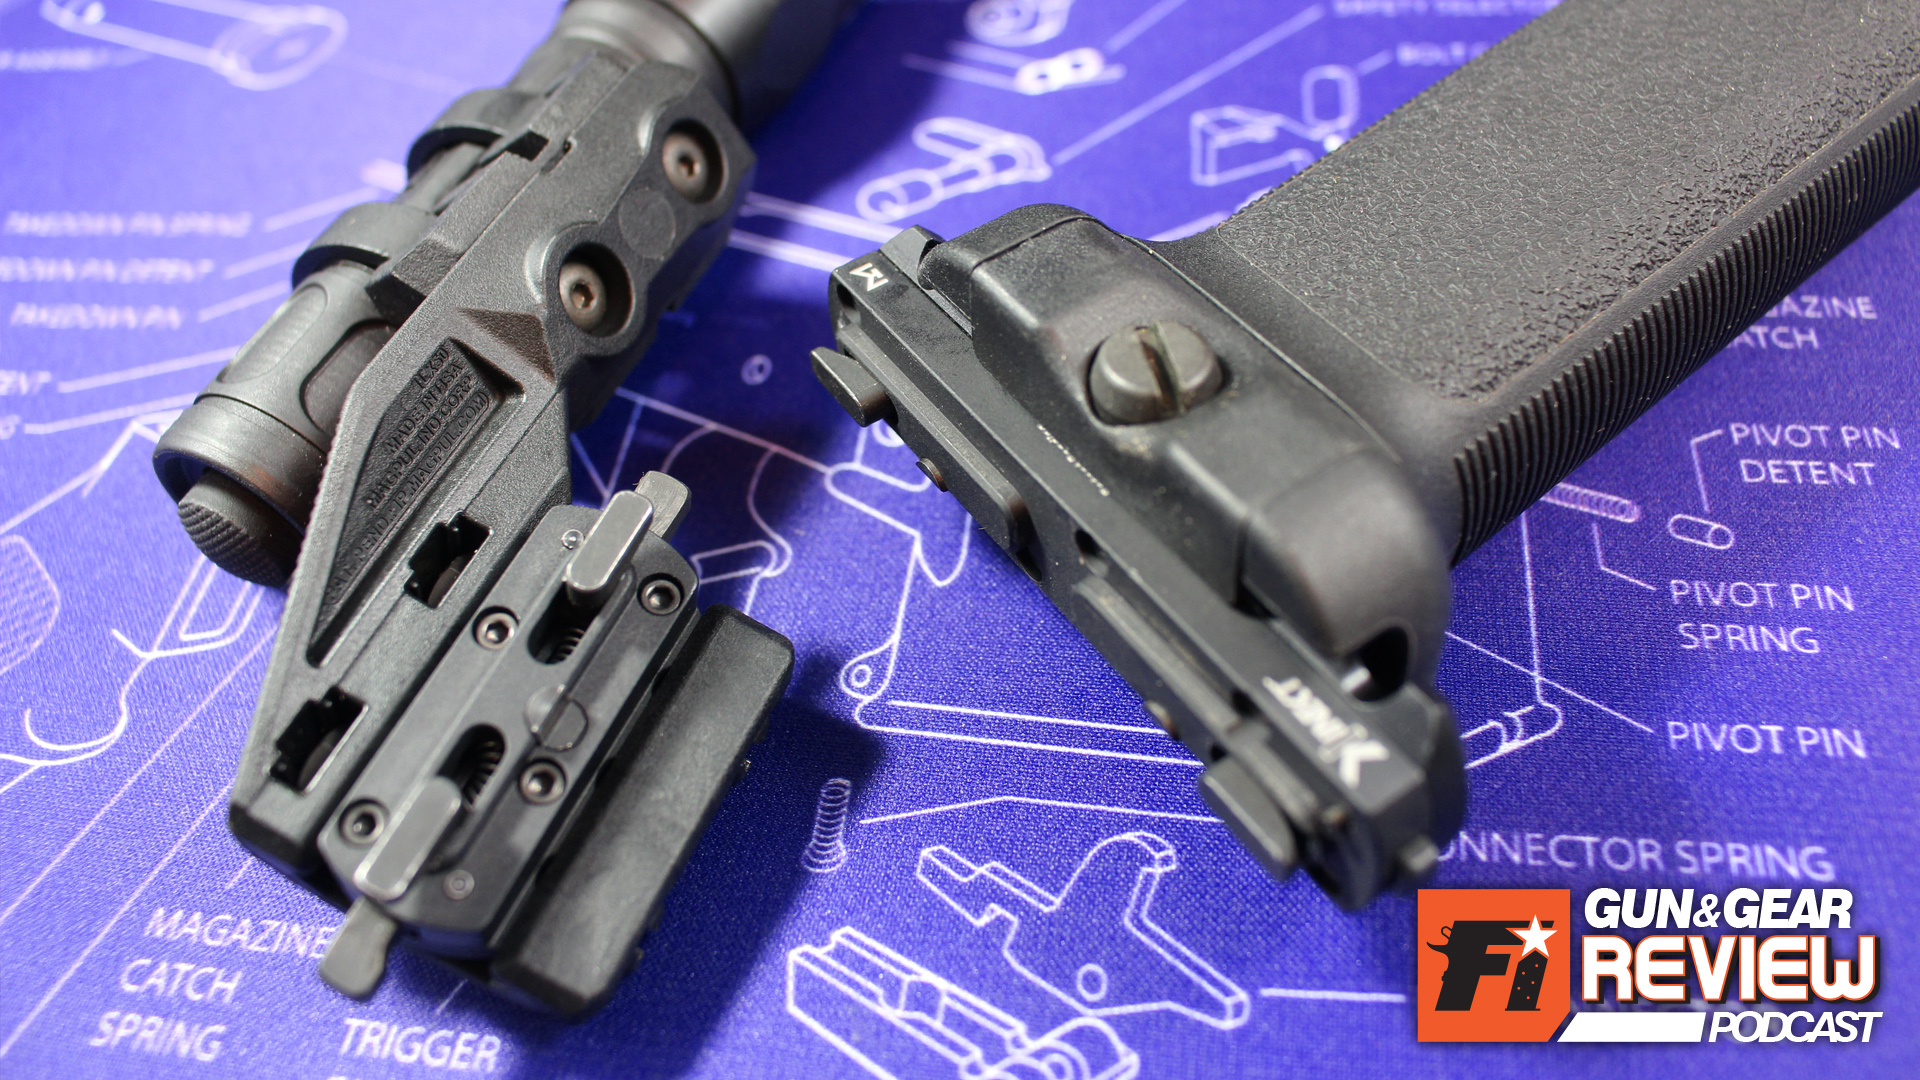 The beauty of Kinect is it converts ordinary picatinny-compatible accessories into M-LOK.